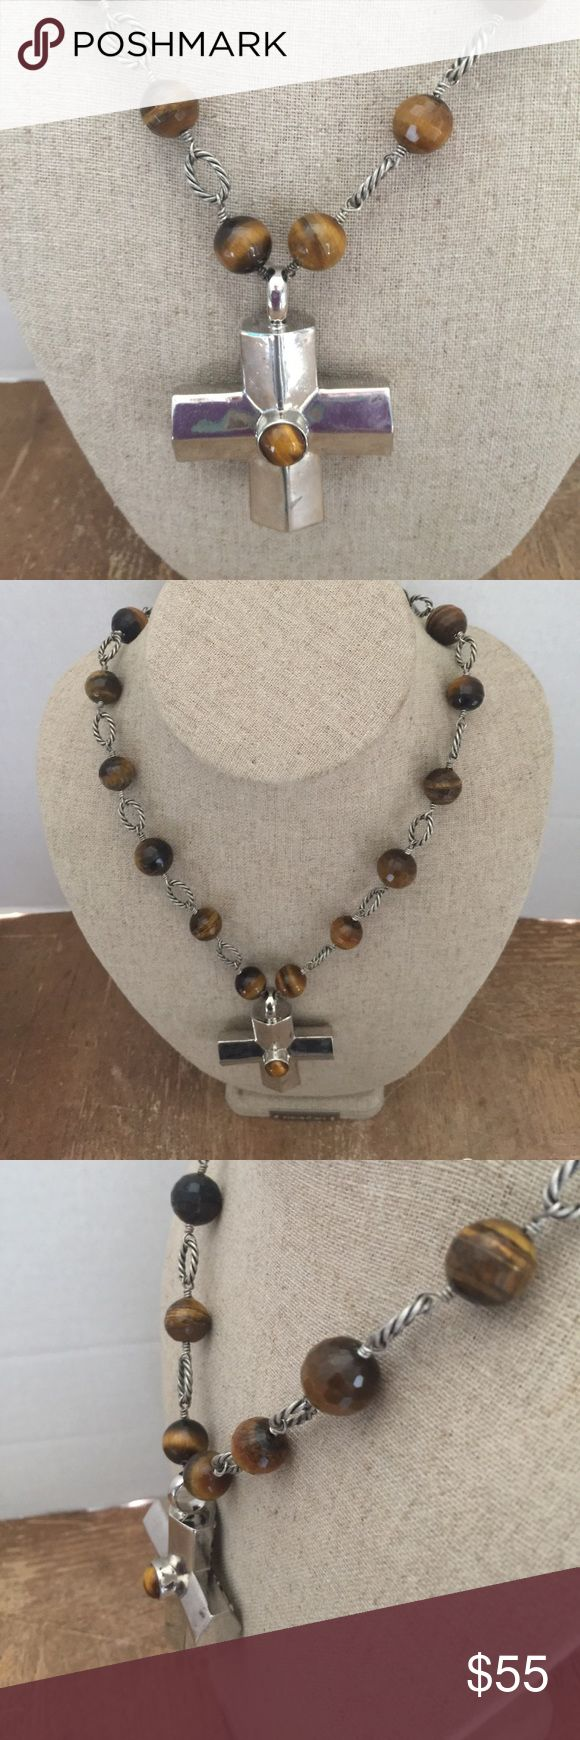 "Tiger Eye Beaded Cross Necklace by Claudia Agudelo Tiger Eye Beaded Cross Necklace by Claudia Agudelo. 26"". Contains a large hollowed cross pendant (2-1/4"") Claudia Agudelo Jewelry Necklaces"